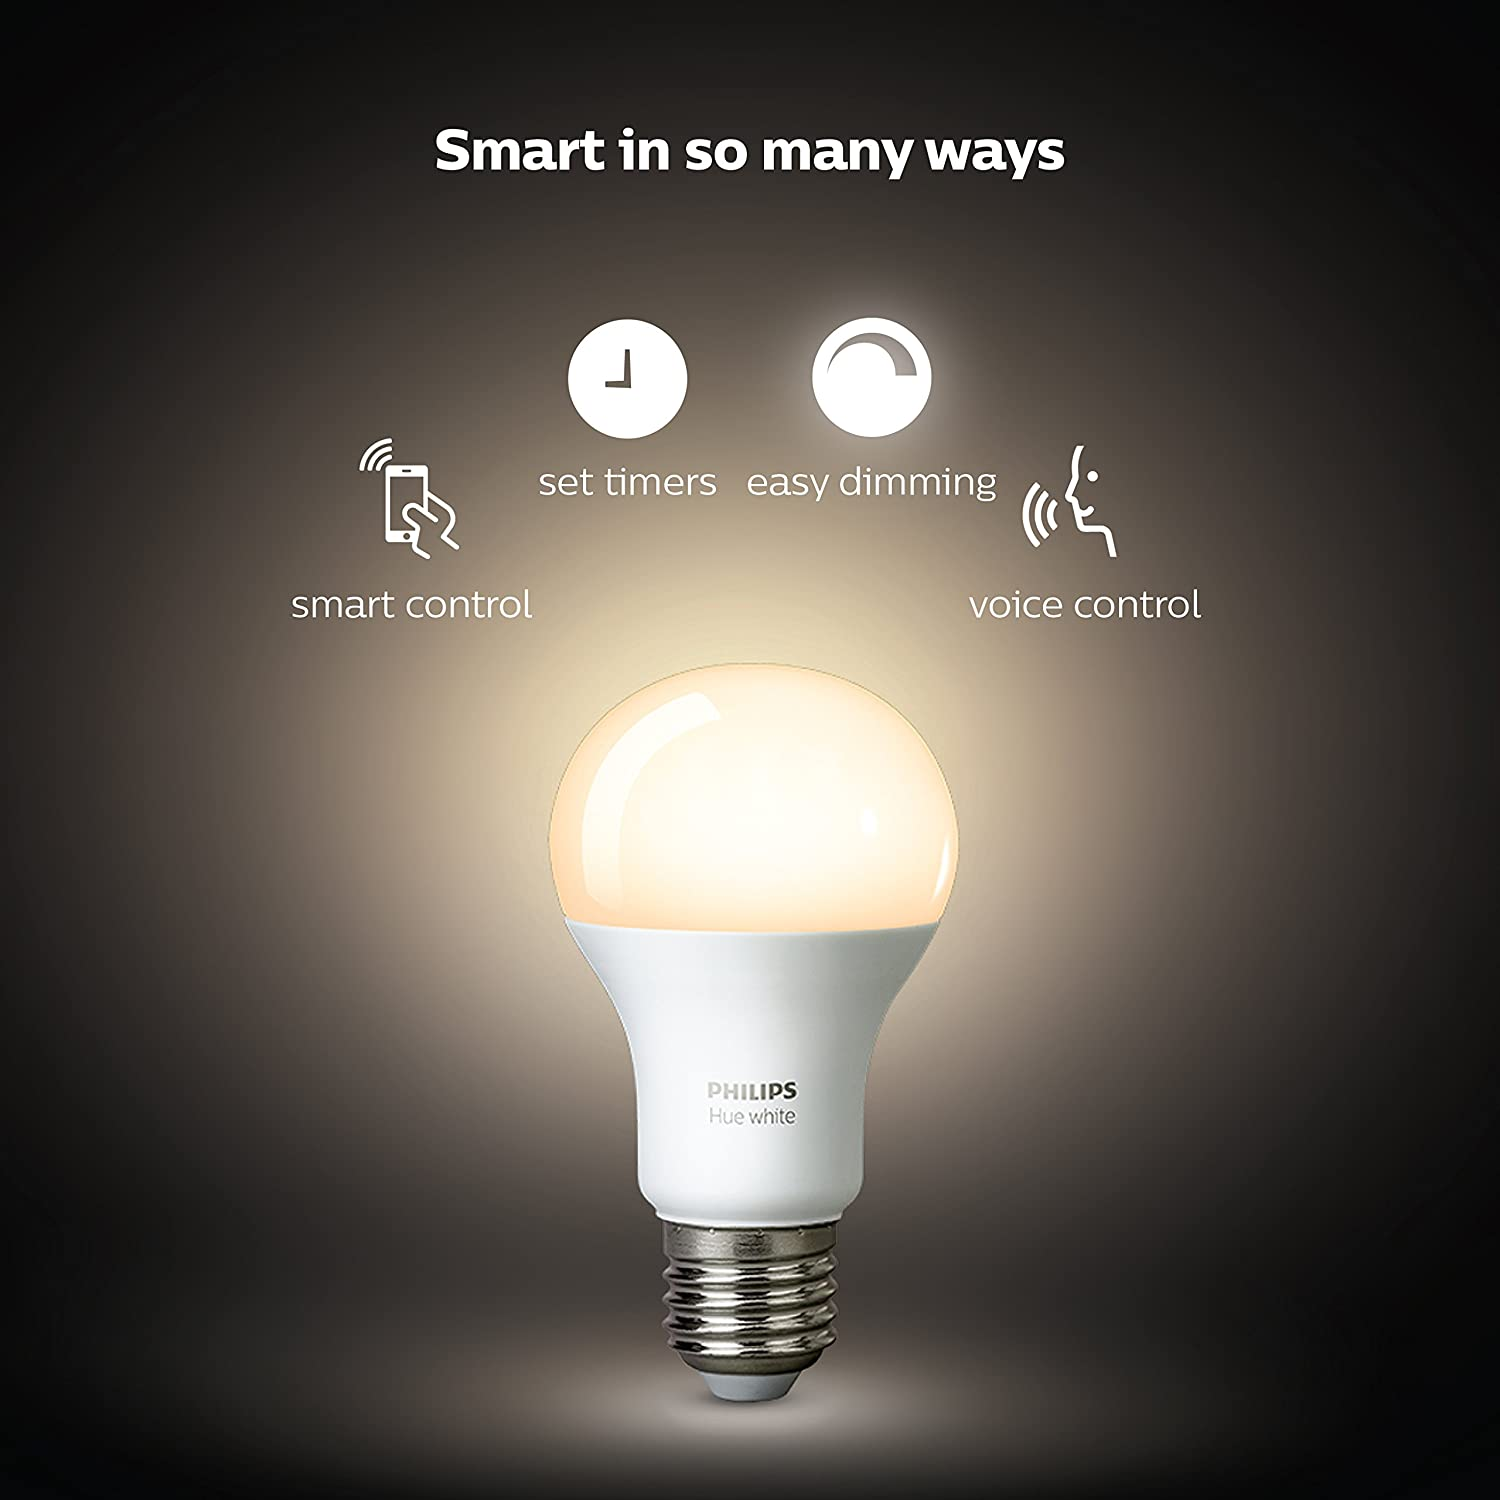 Philips Hue White A19 60w Equivalent Led Smart Bulb Starter Kit 4 Wire Inside The Called A Filament Lights Bulbs And 1 Hub Compatible With Amazon Alexa Apple Homekit Google